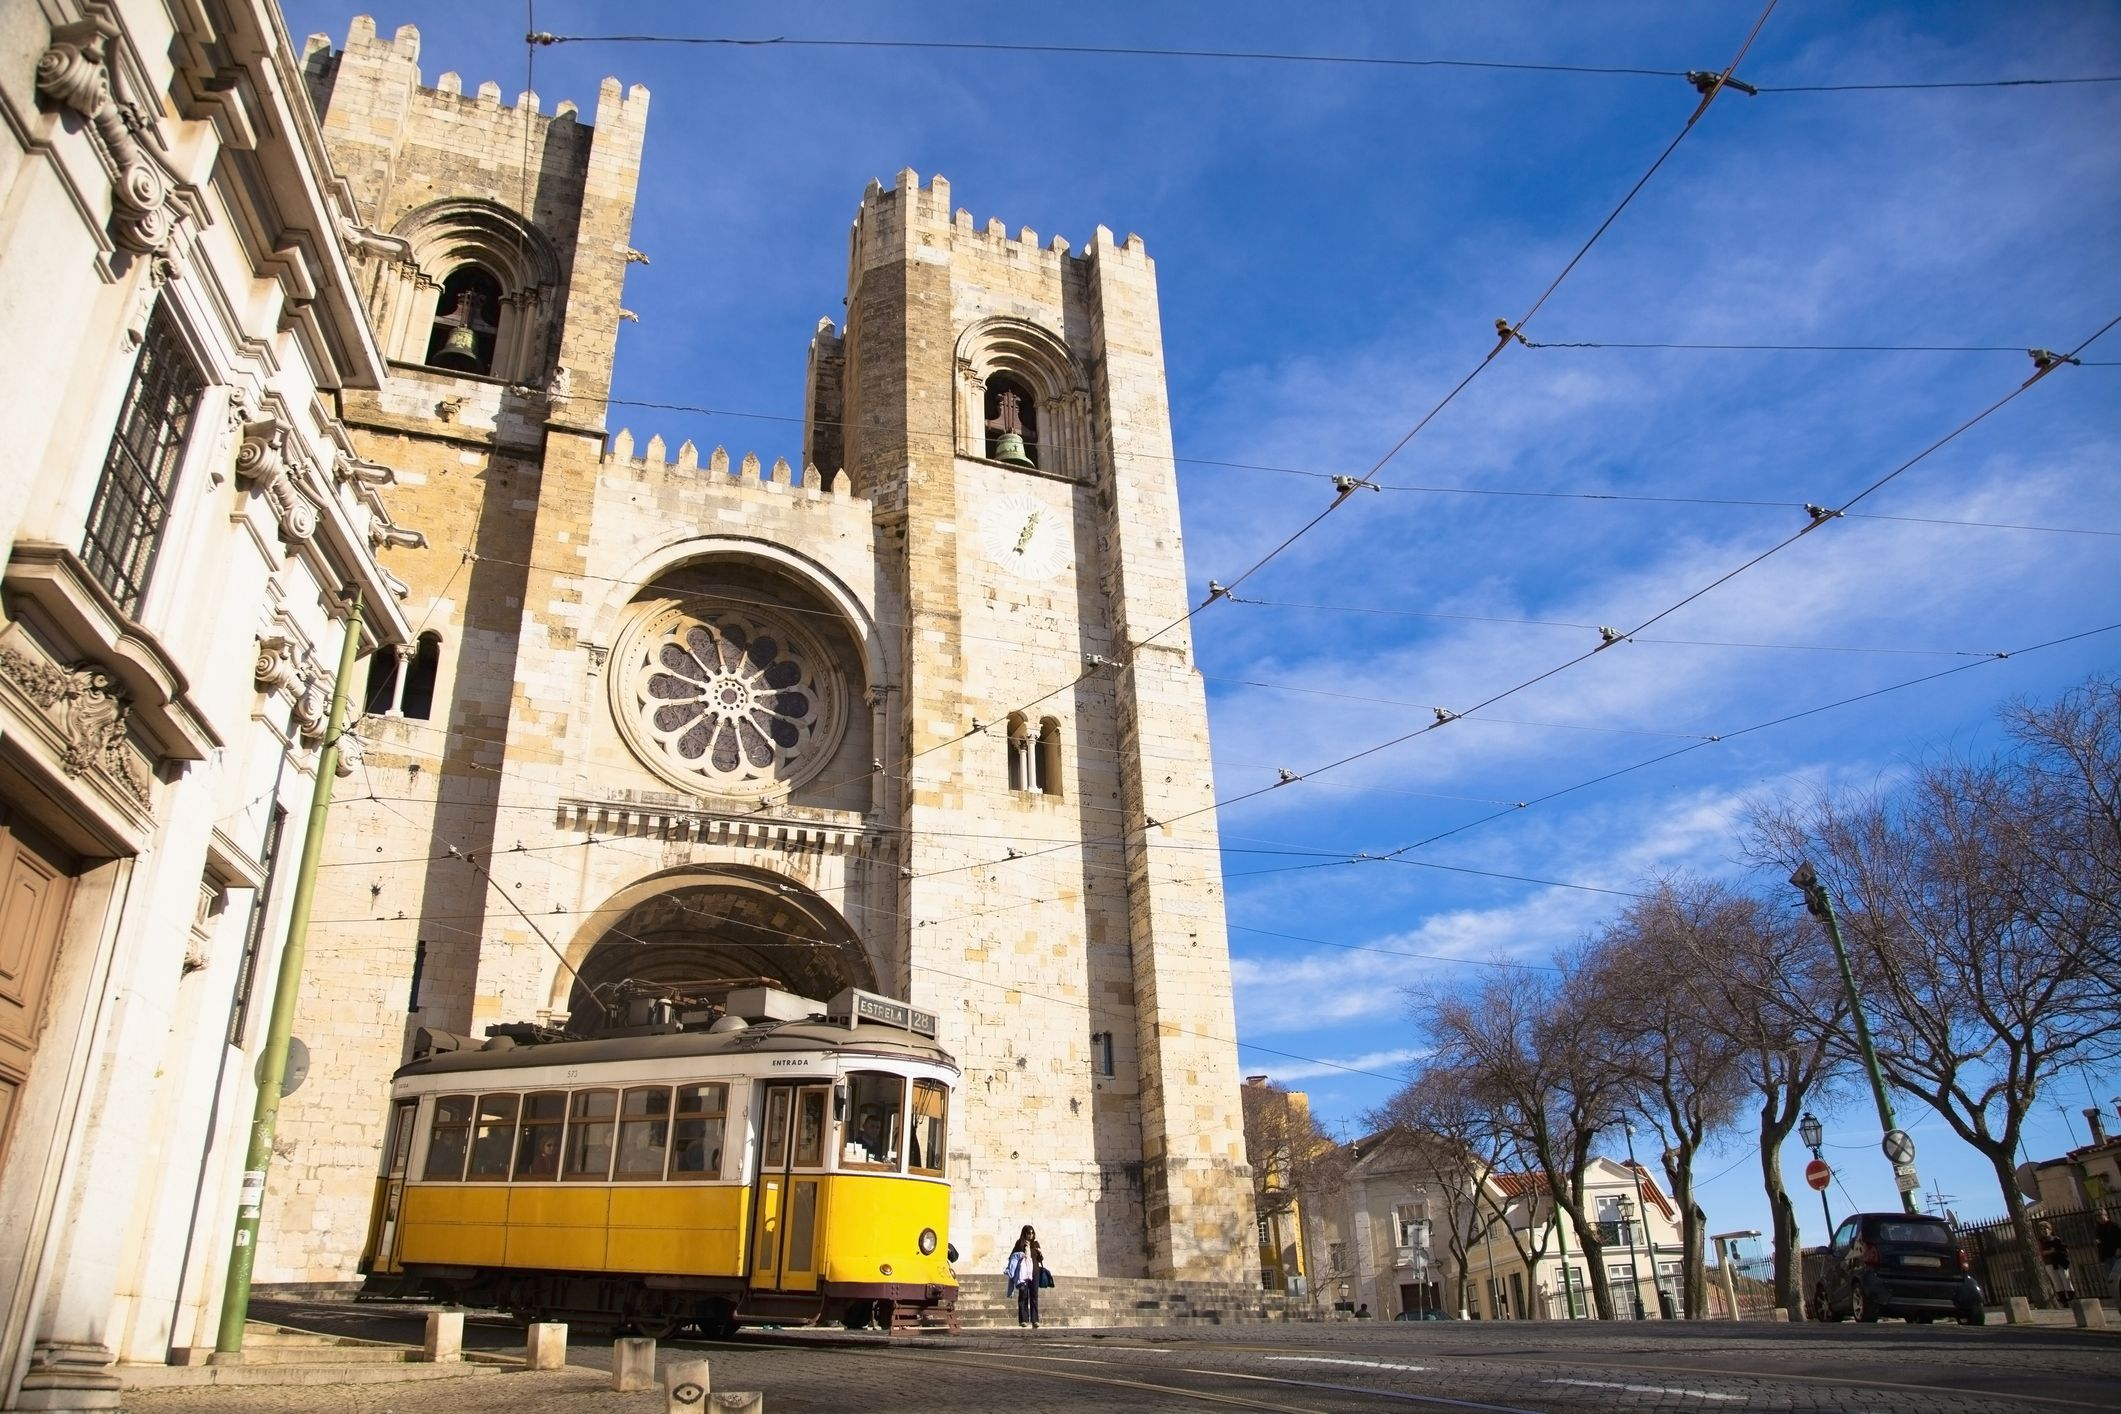 Capital City Auto >> How to Ride the Tram in Lisbon